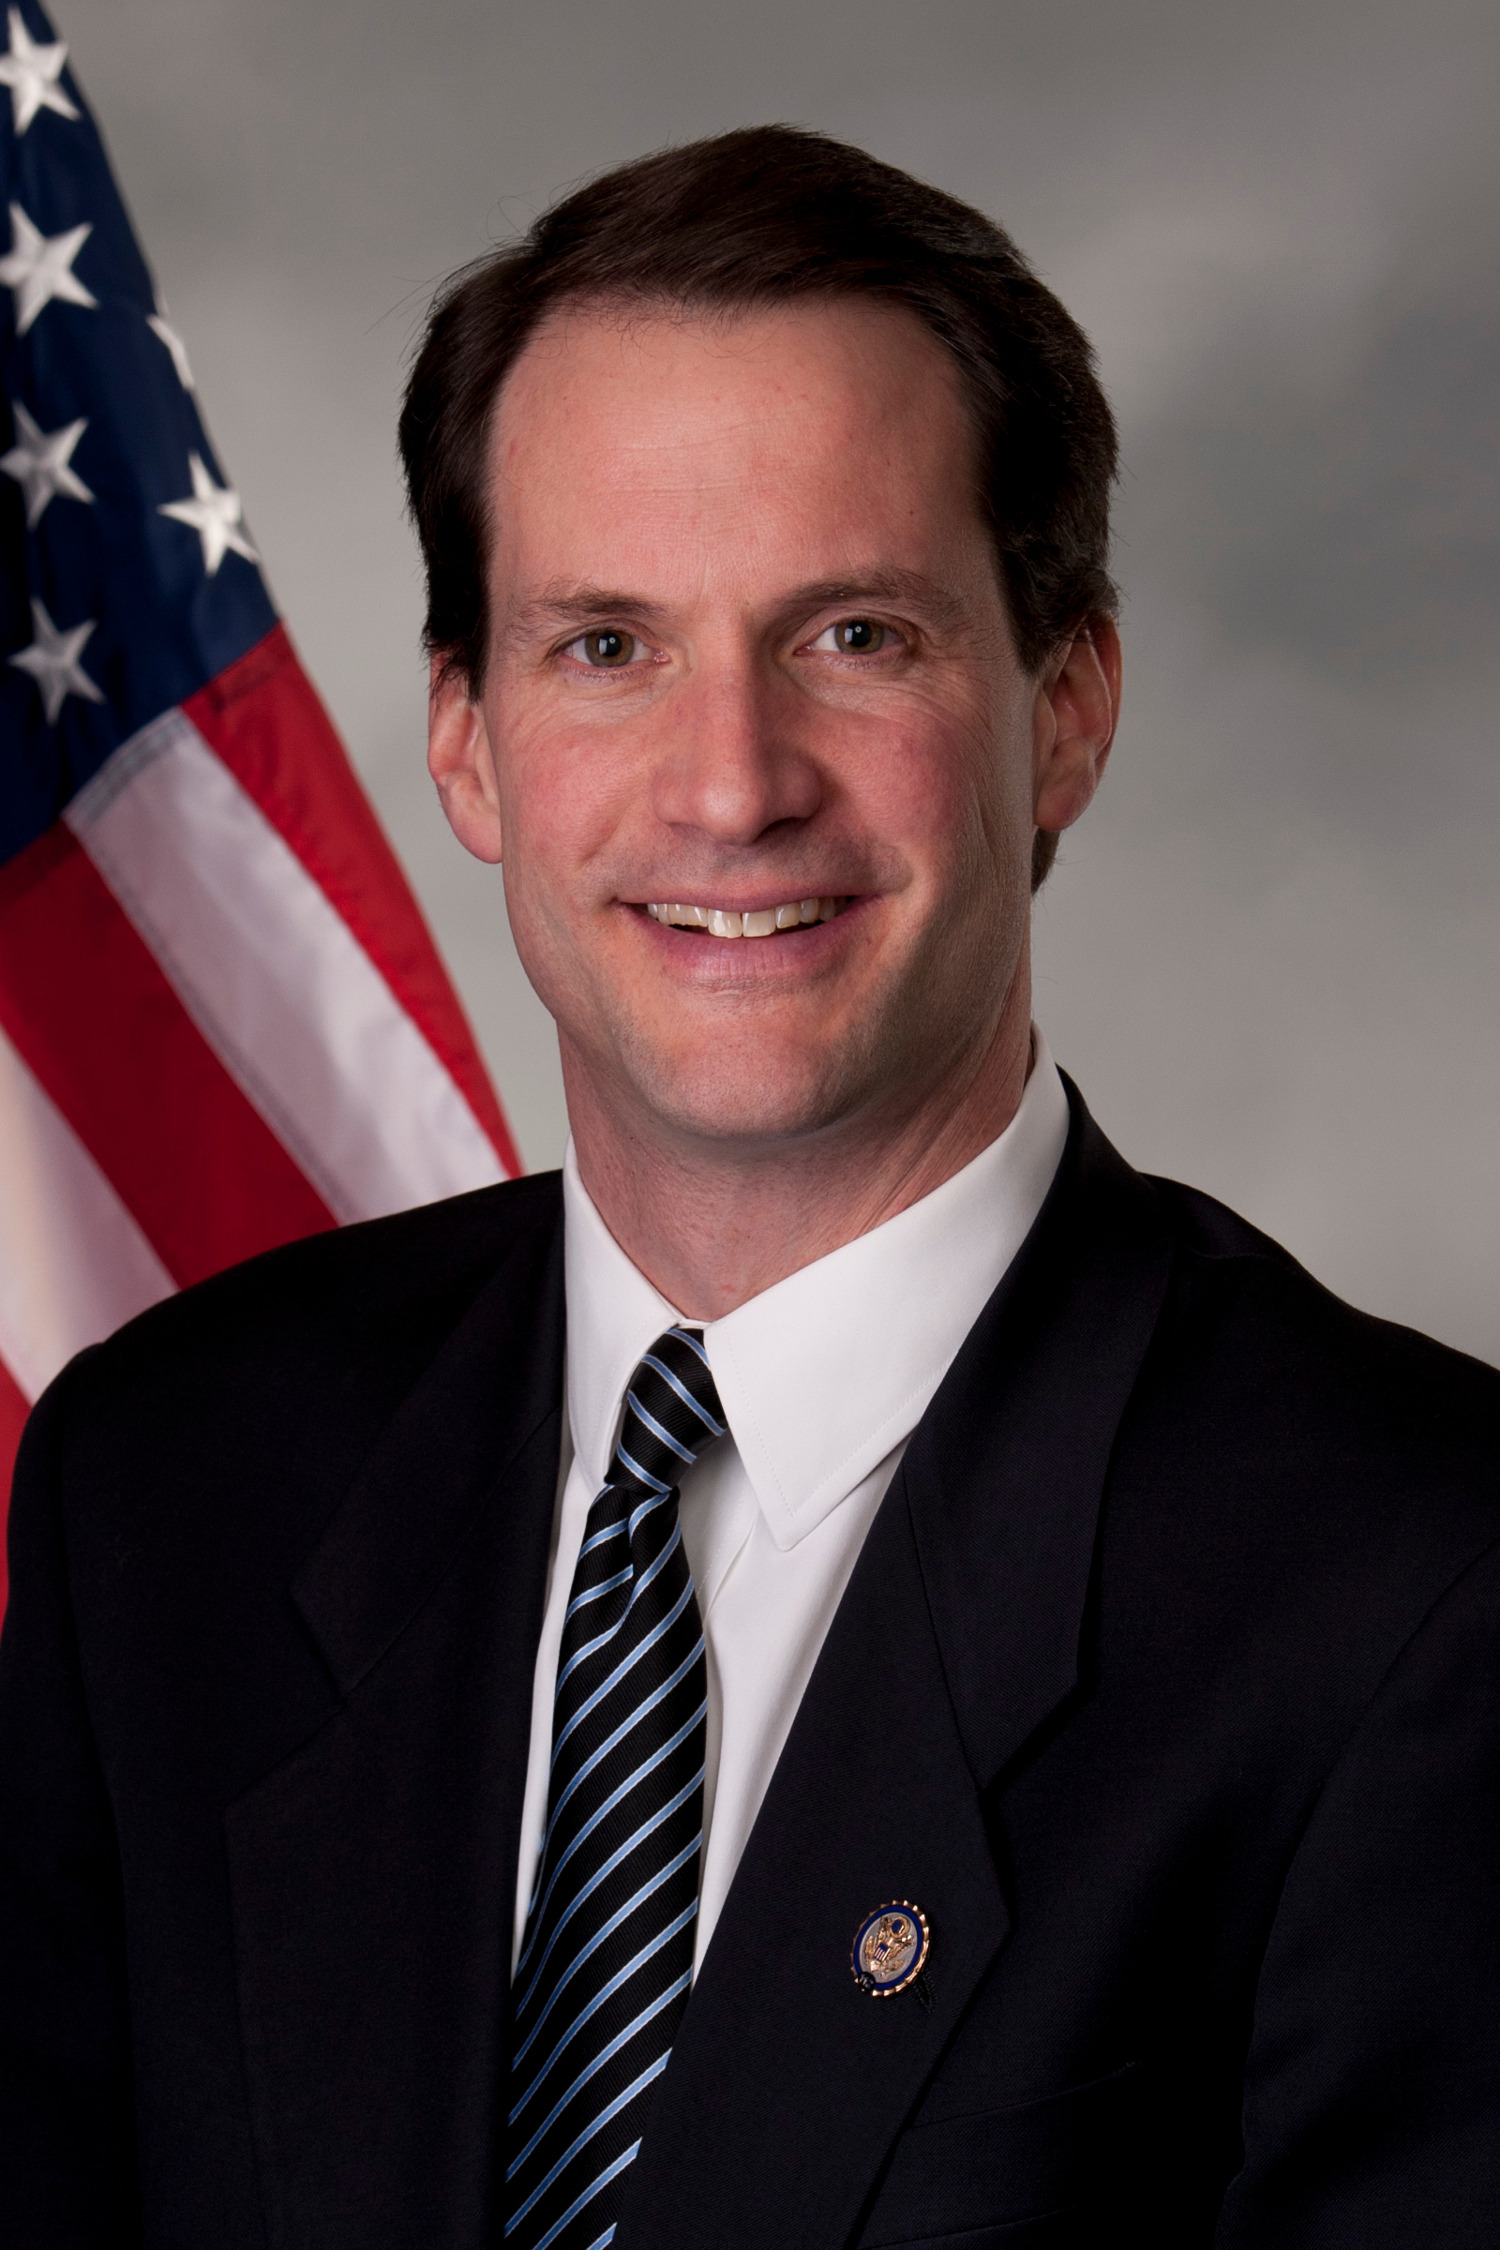 U.S. Rep. Jim Himes, D-4th Dist., said national gun control policy must change to prevent shootings like the one in Newtown Dec. 14.